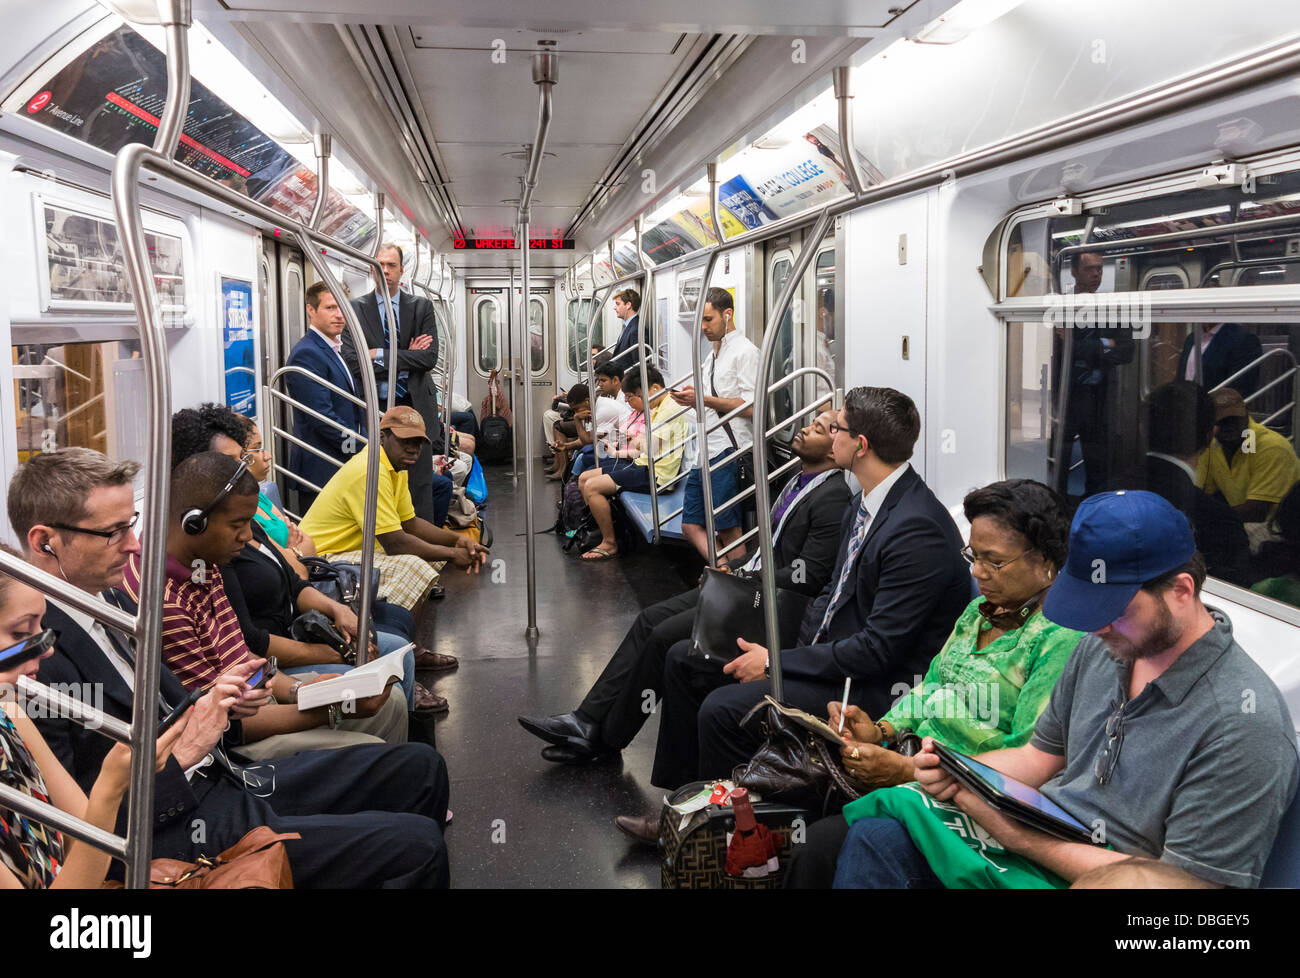 Commuters on the New York City subway in the morning - Stock Image